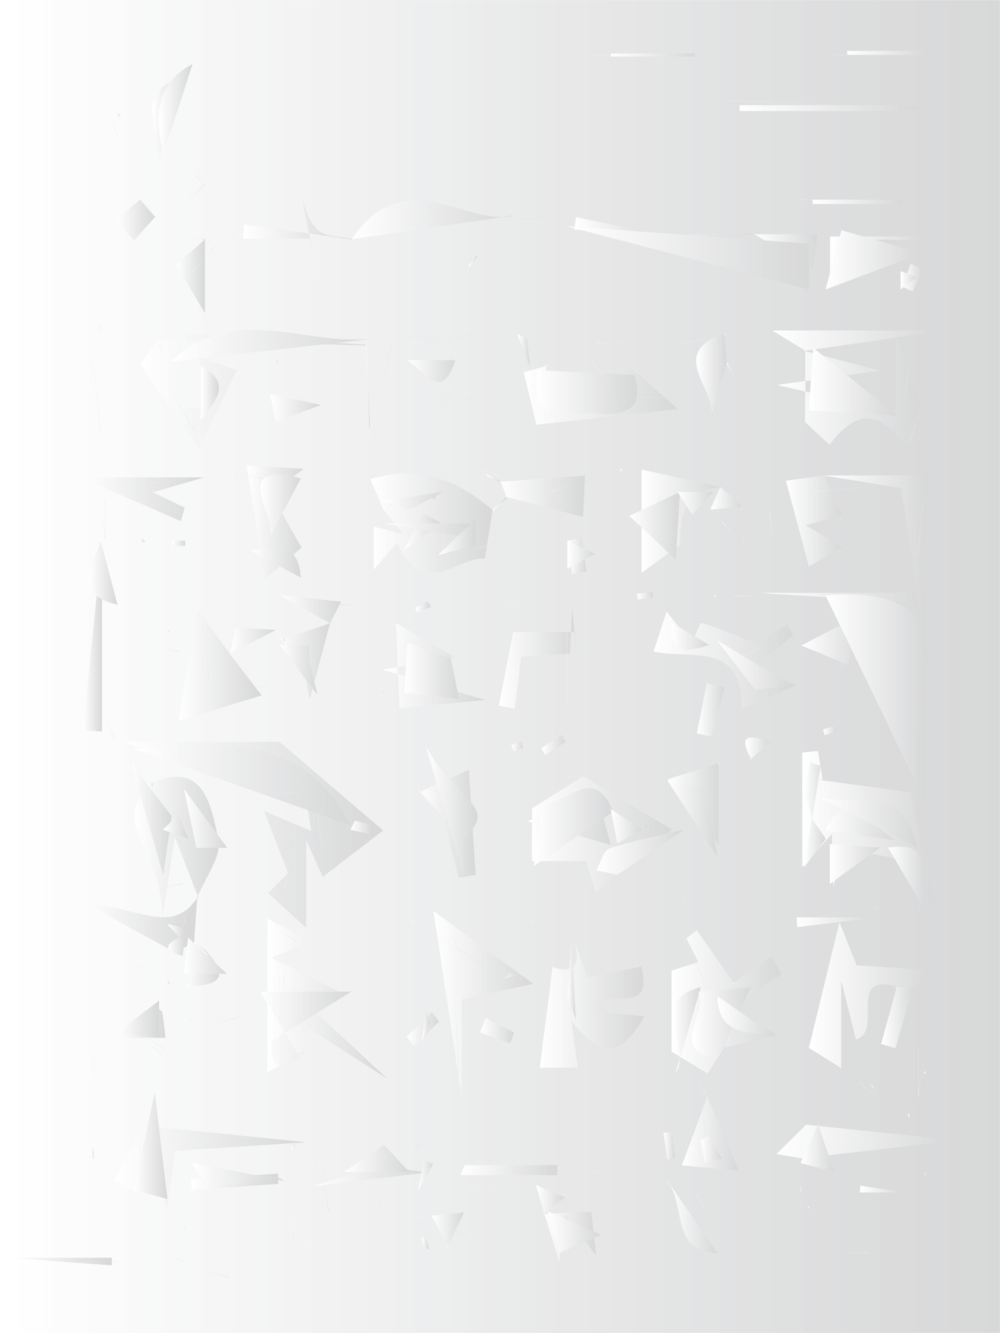 side, above: digital abstractions of generated cuneiform